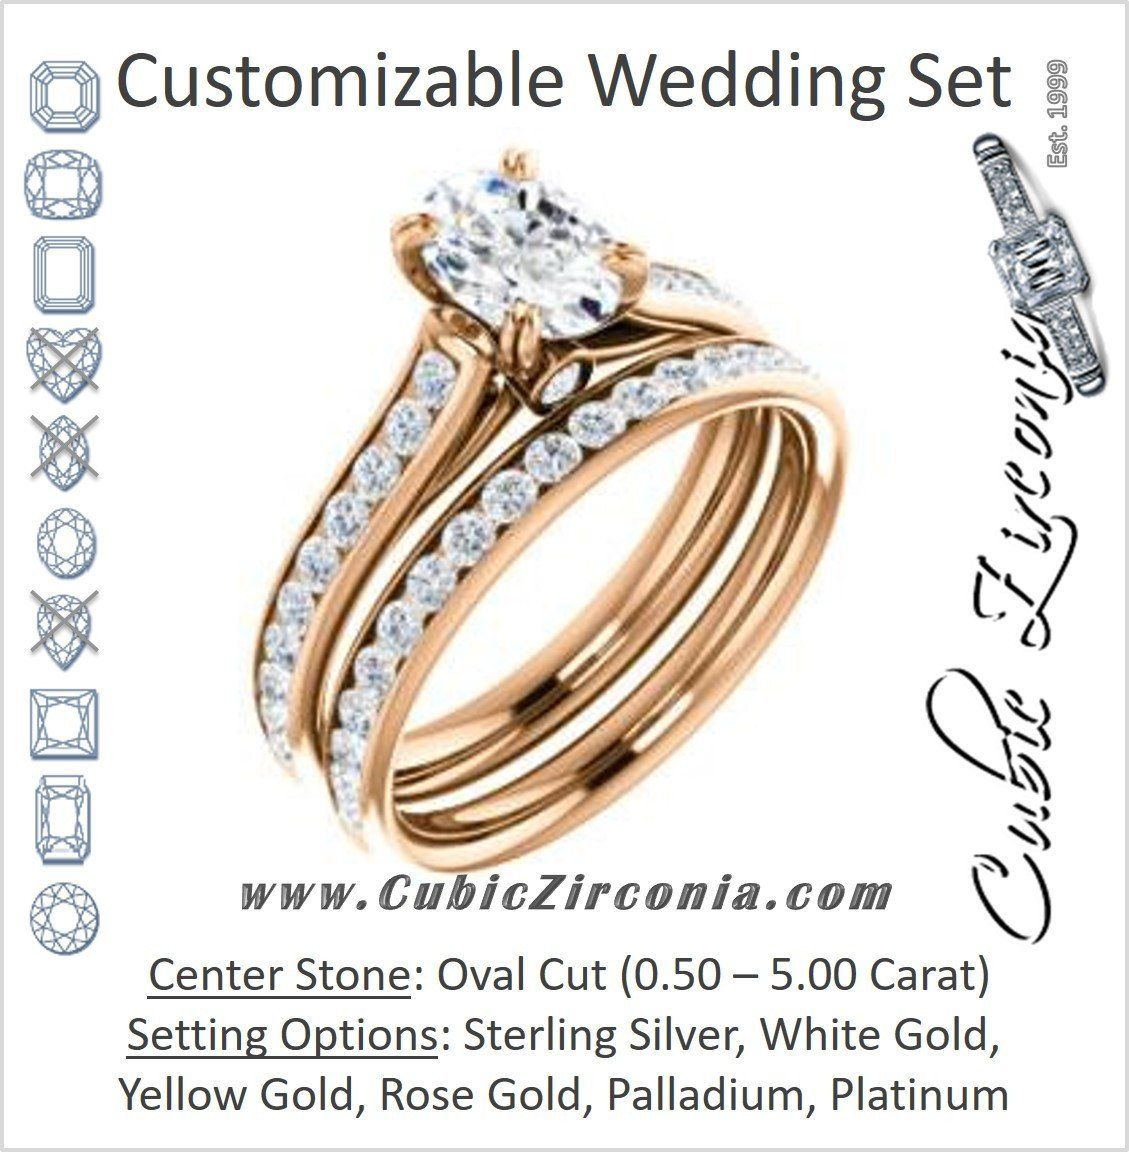 Cz Wedding Set Featuring The Tabitha Engagement Ring Customizable Oval Center With Round Channel